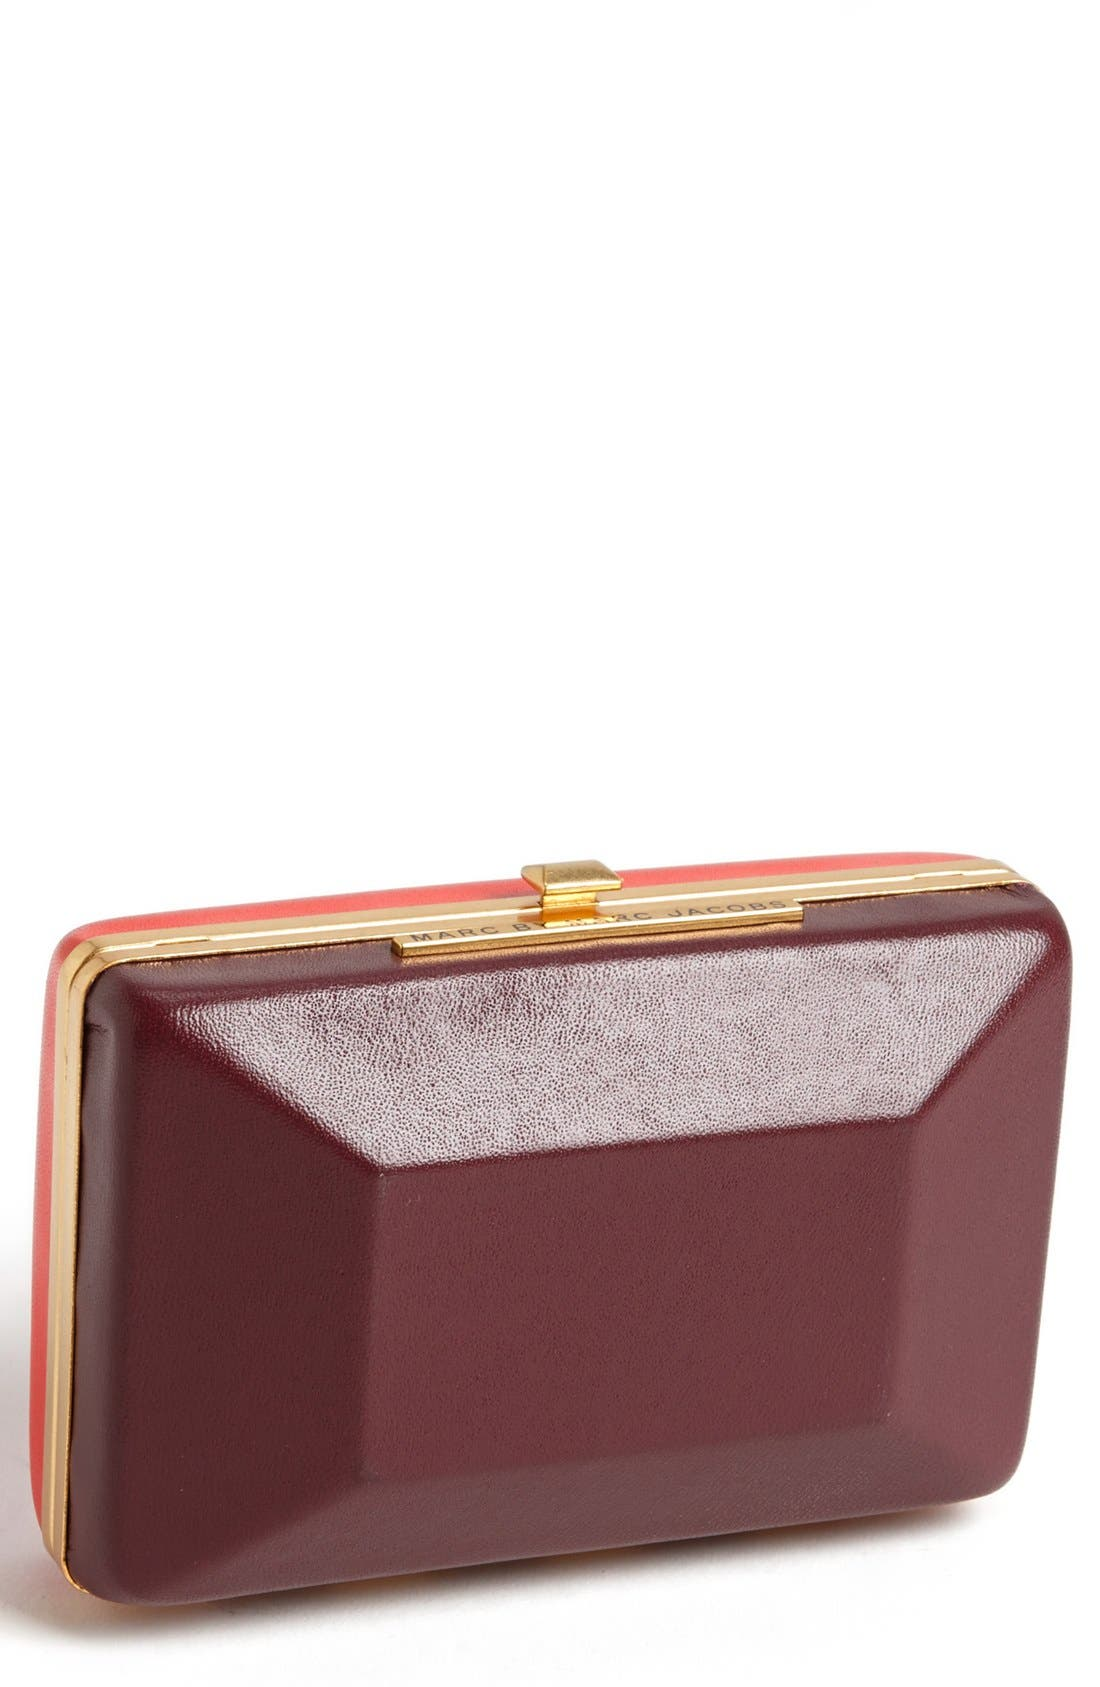 Alternate Image 1 Selected - MARC BY MARC JACOBS 'Box It Up' Colorblock Leather Clutch